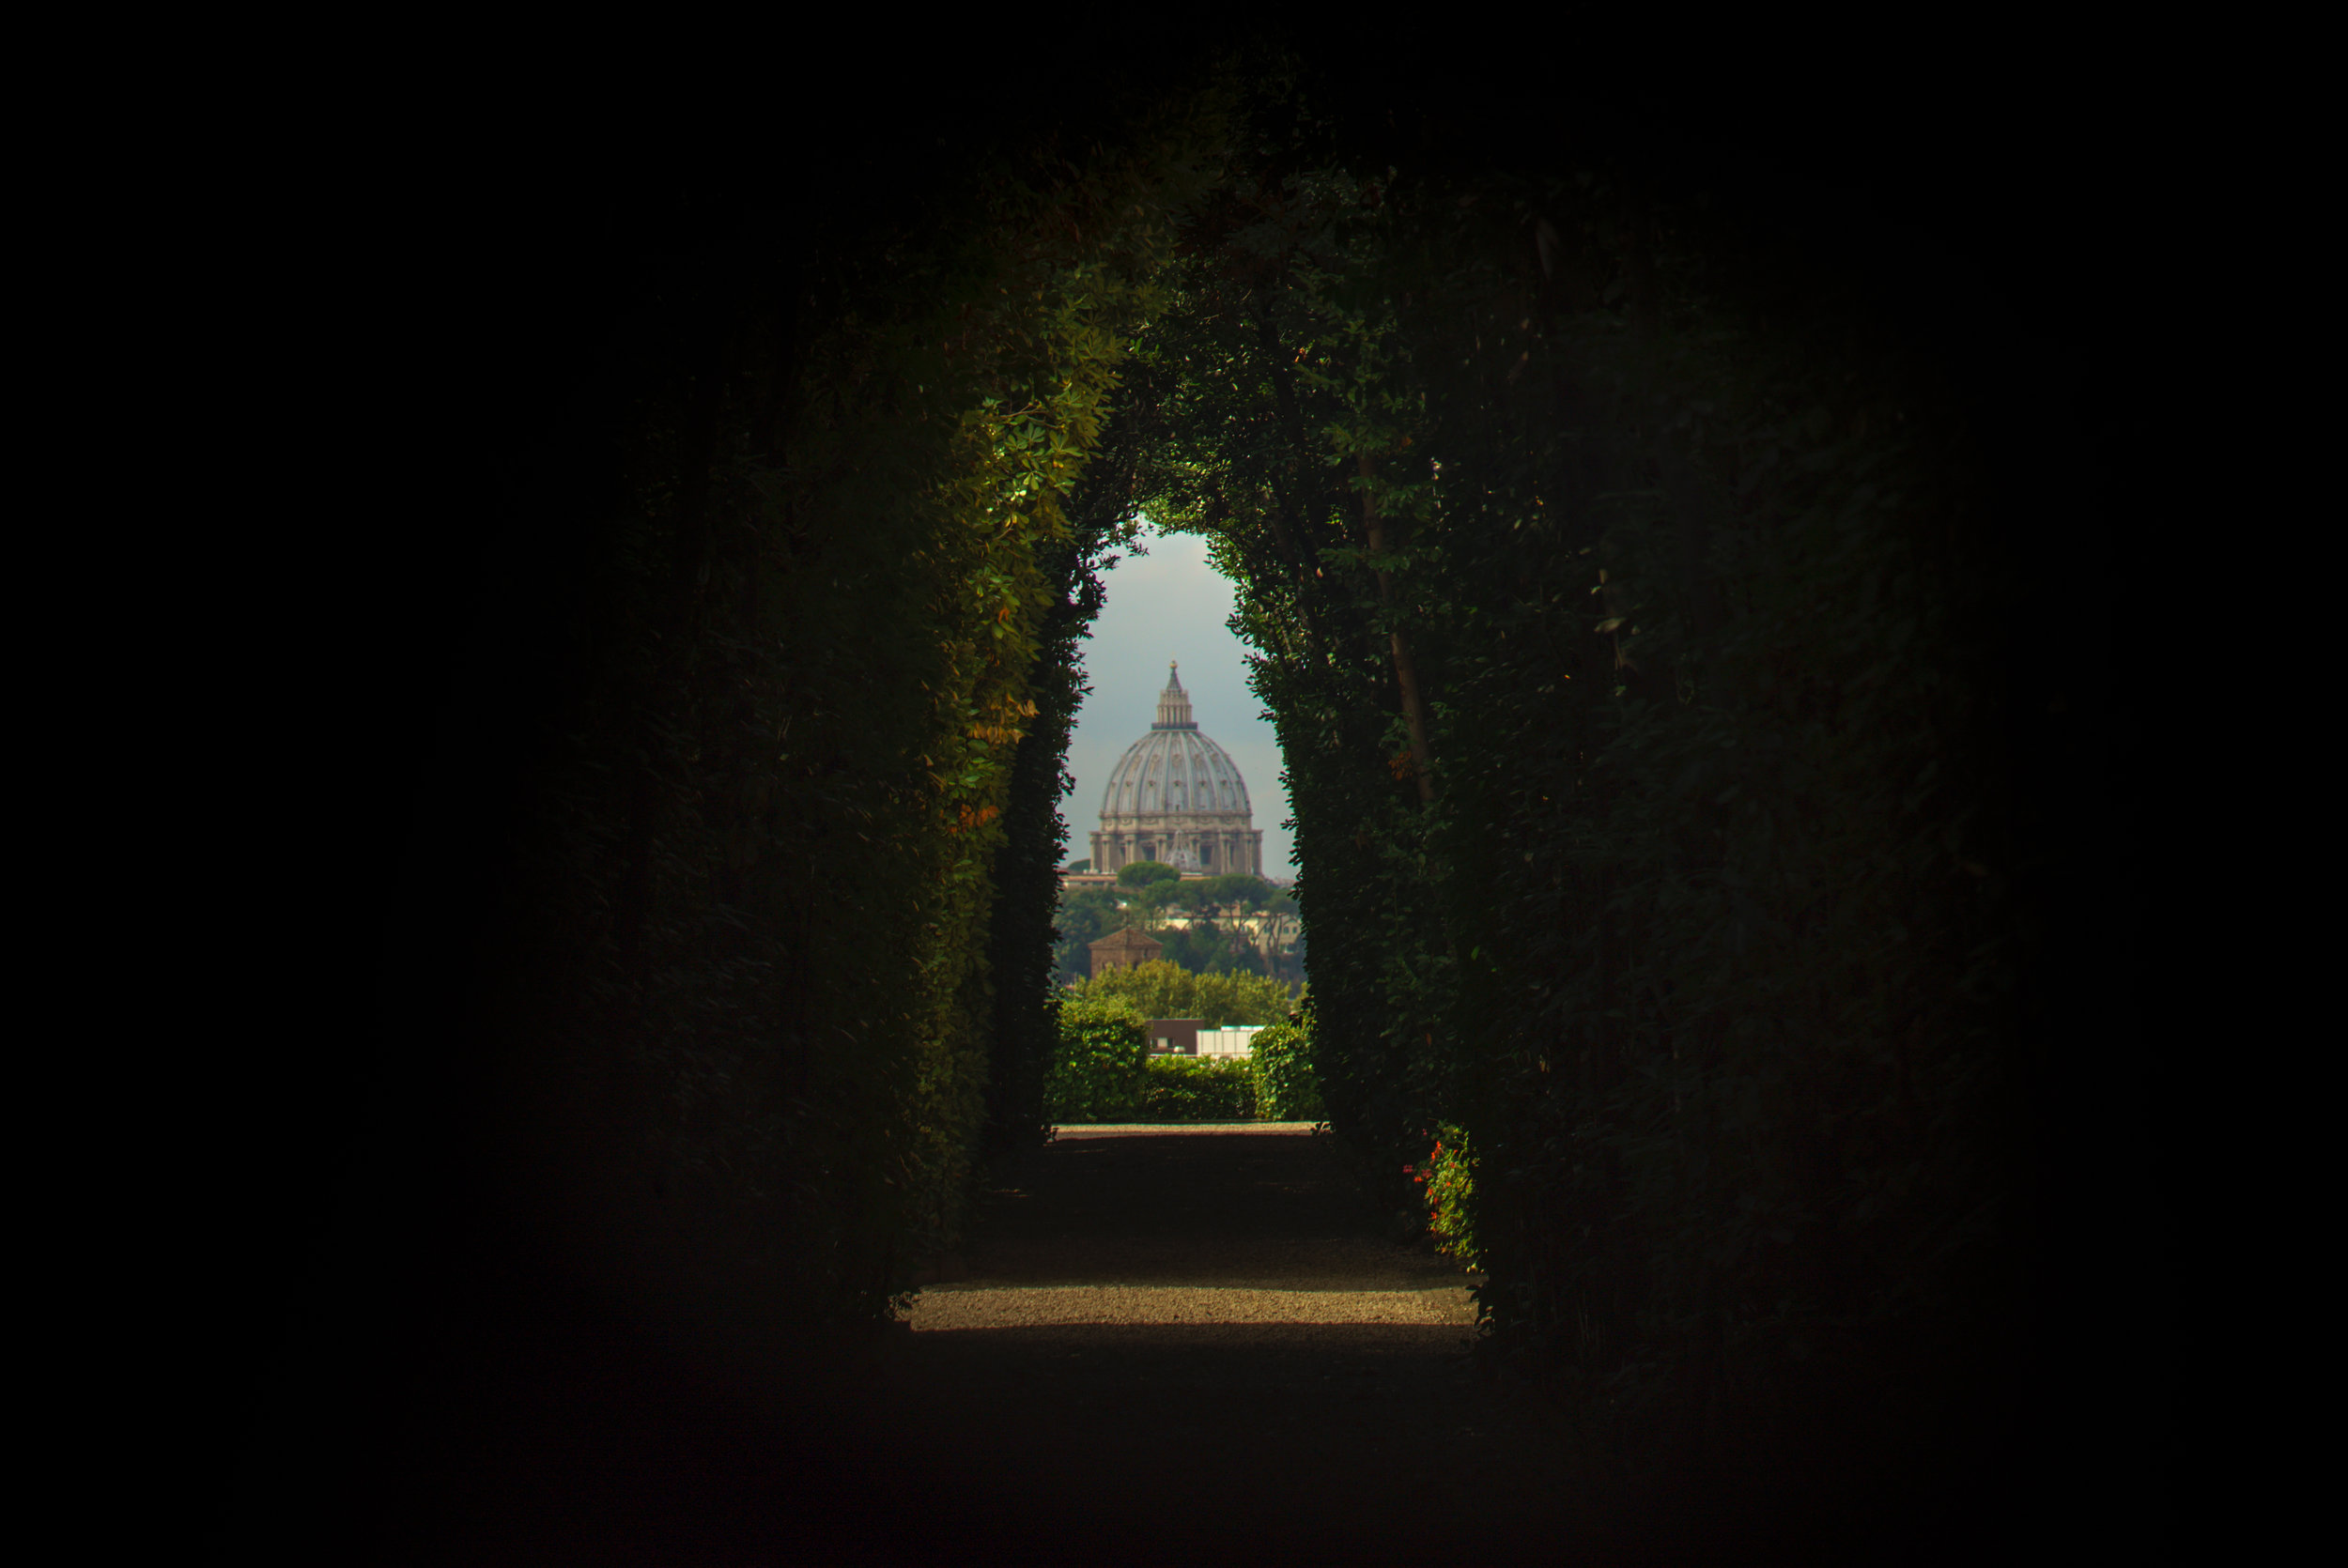 Rome Keyhole - Her Bags Were Packed